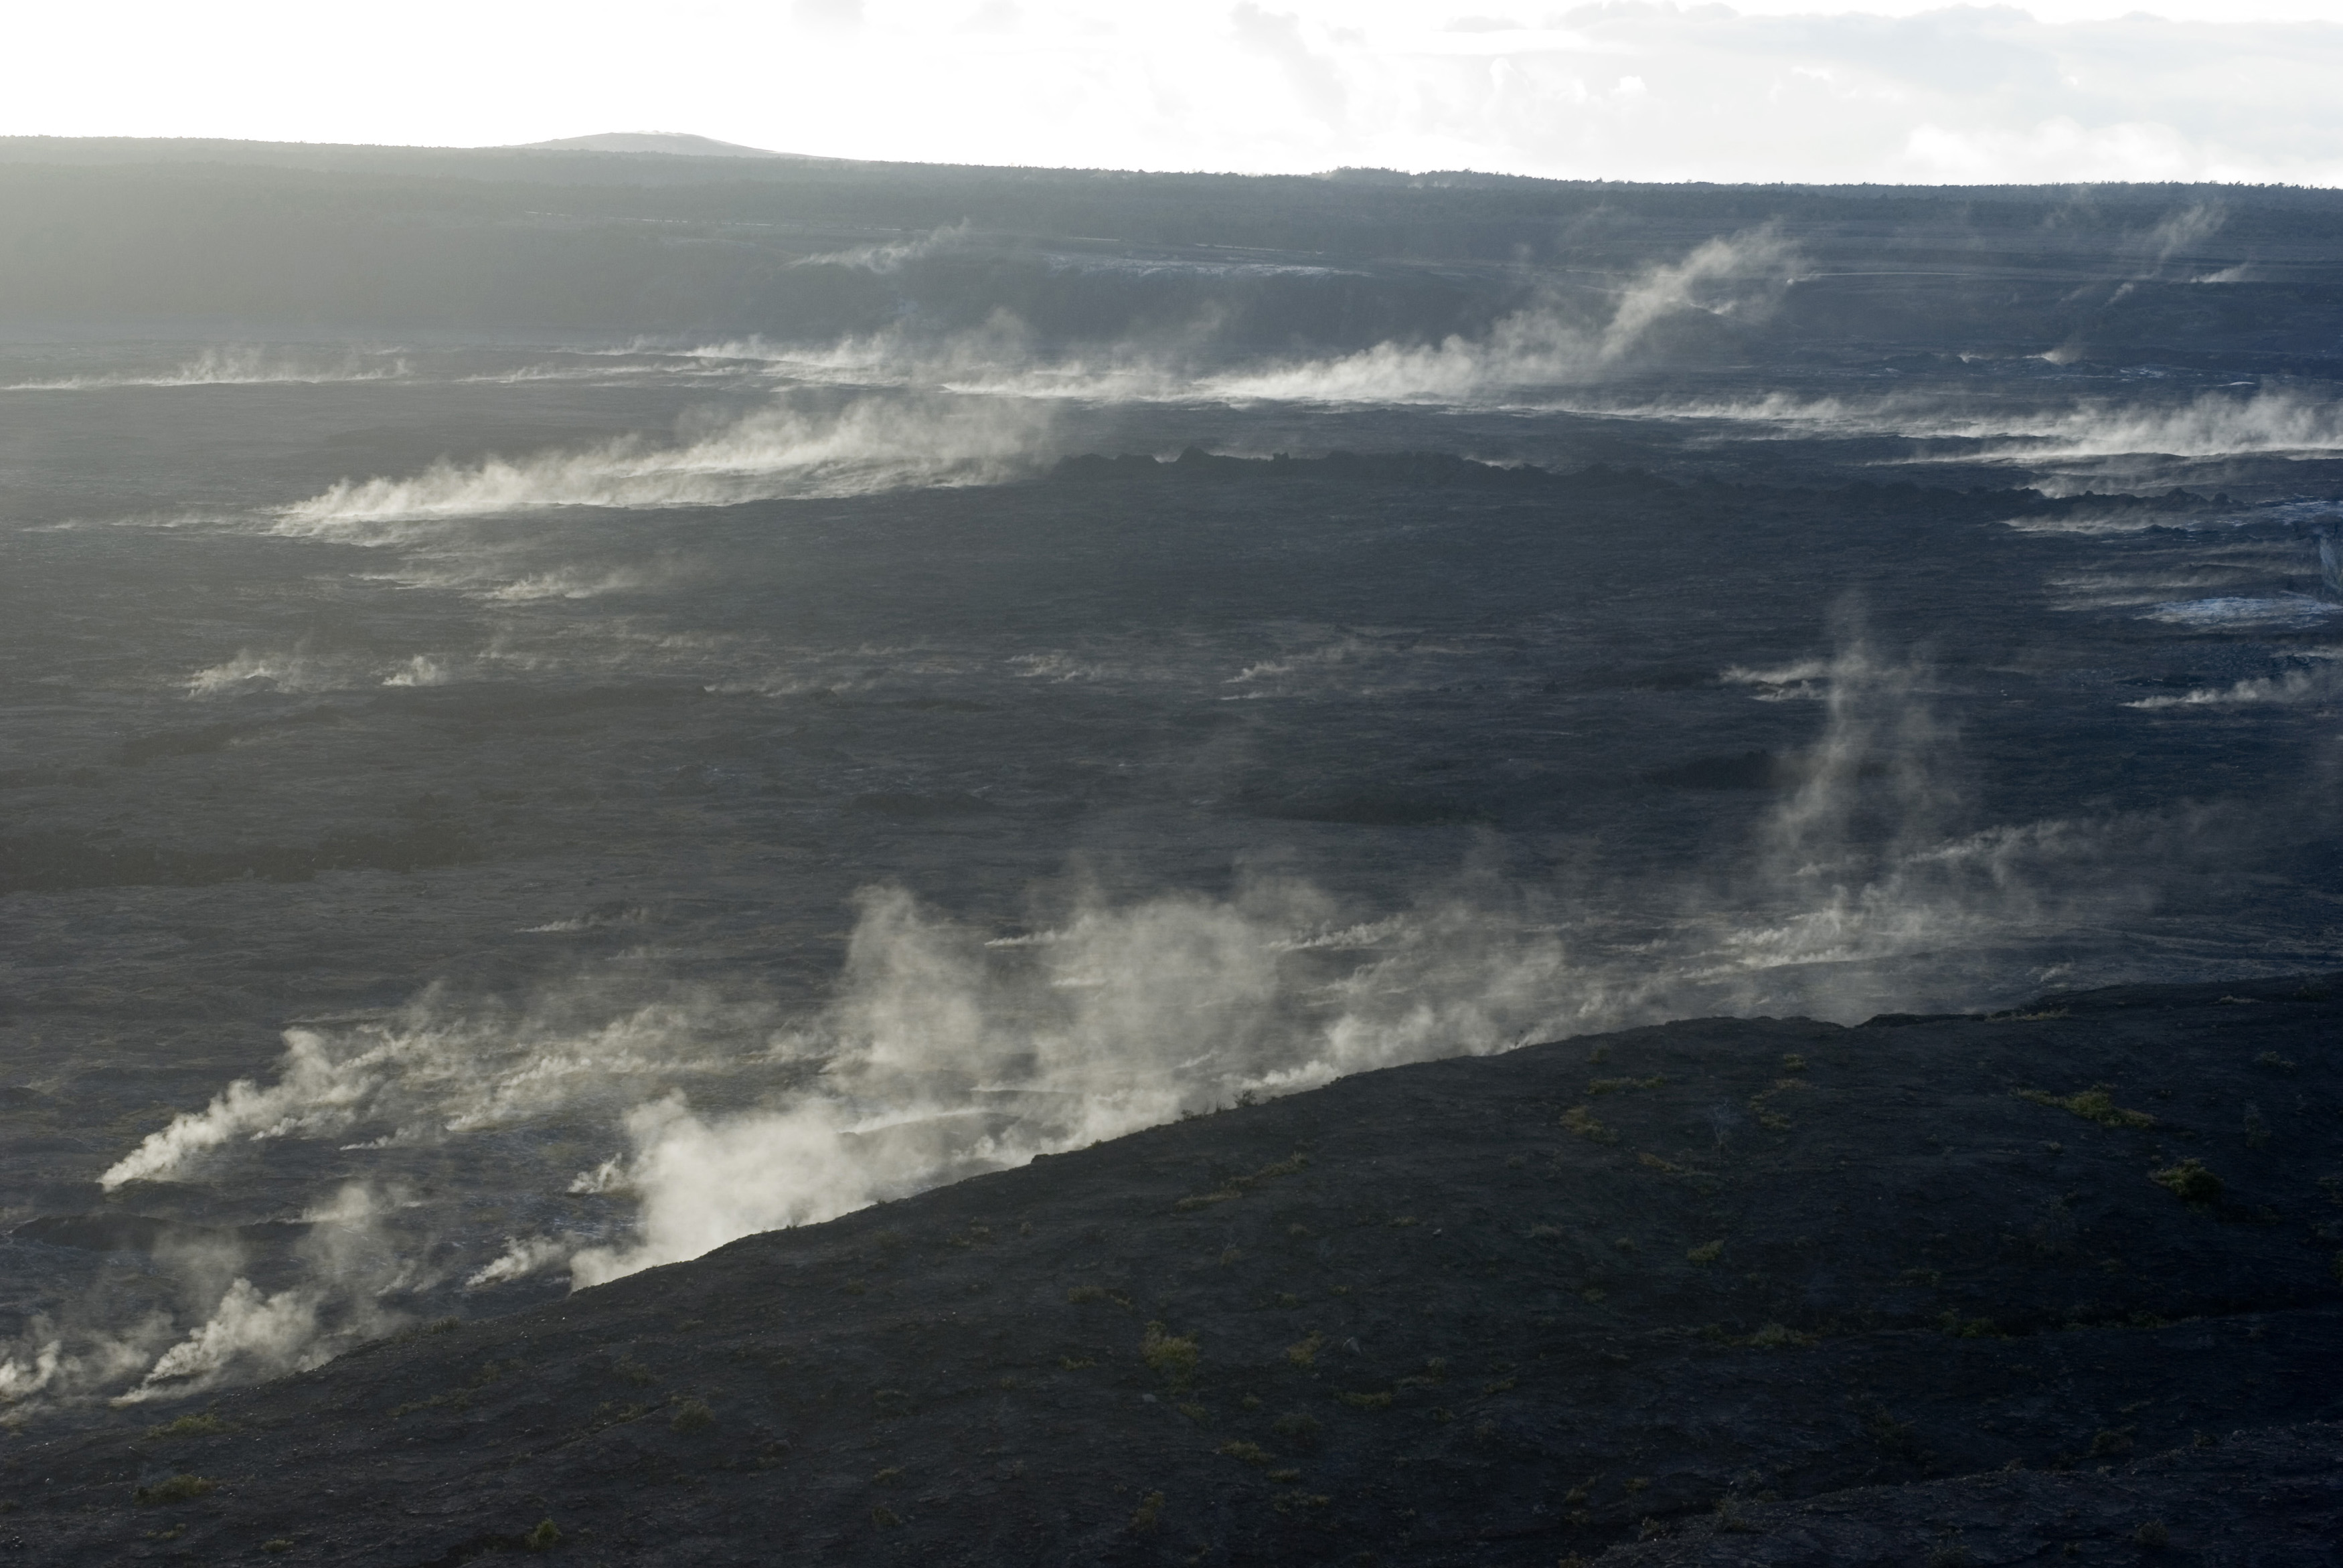 volcanic smoke and gasses rising from the kilauea caldera on hawaiis big island